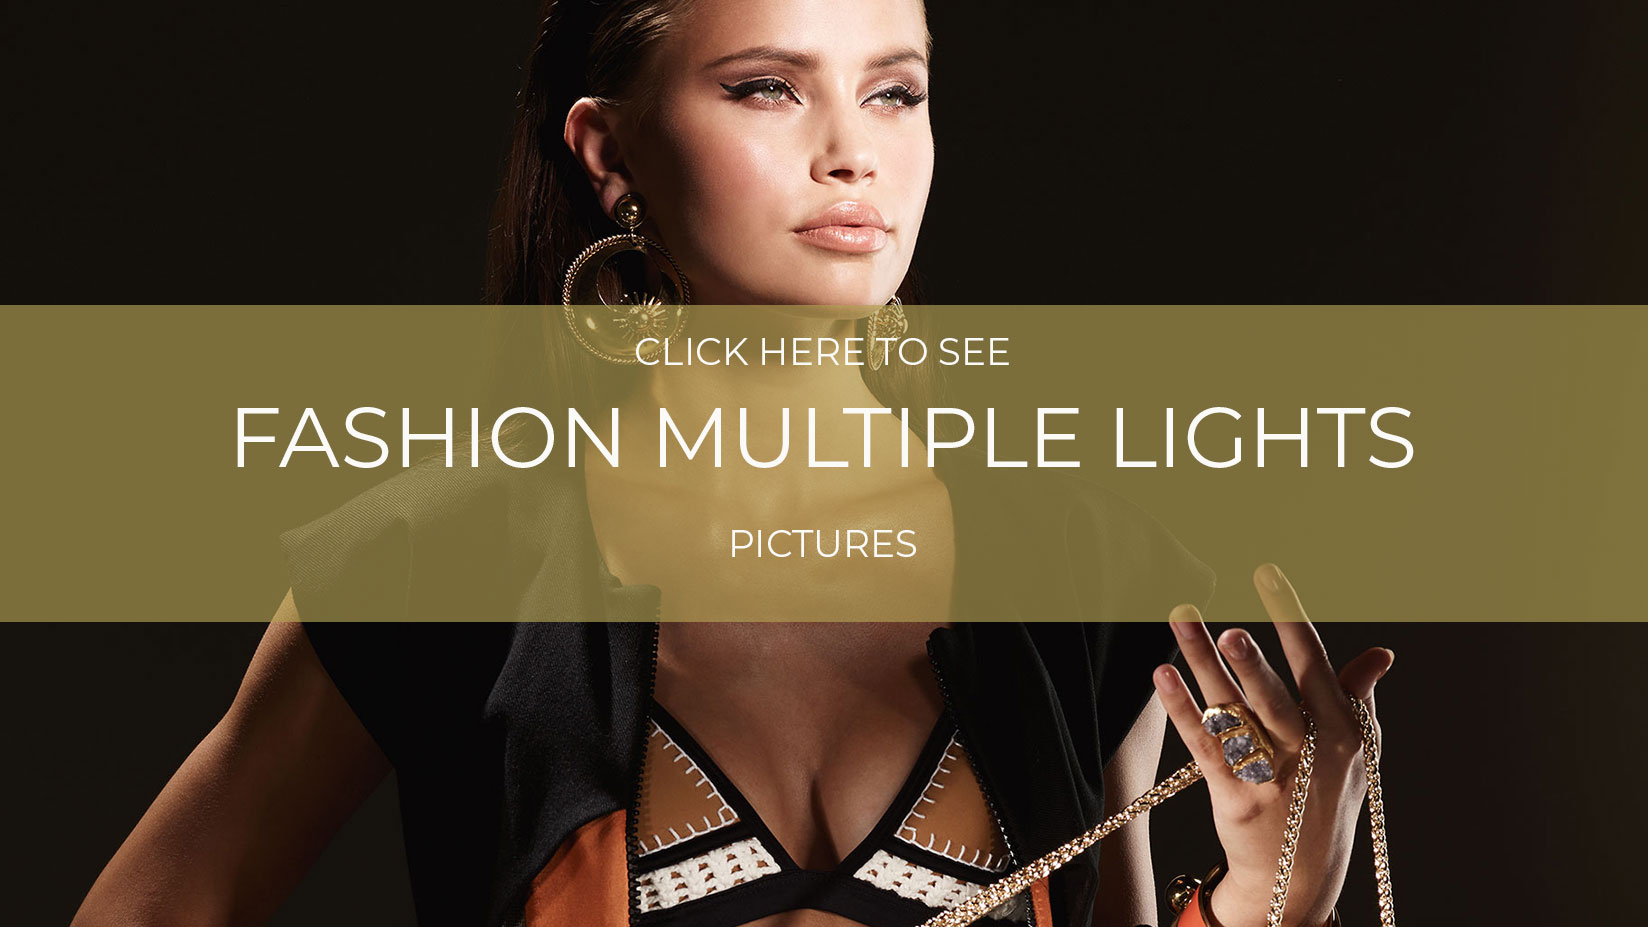 Fashion Multiple Lights